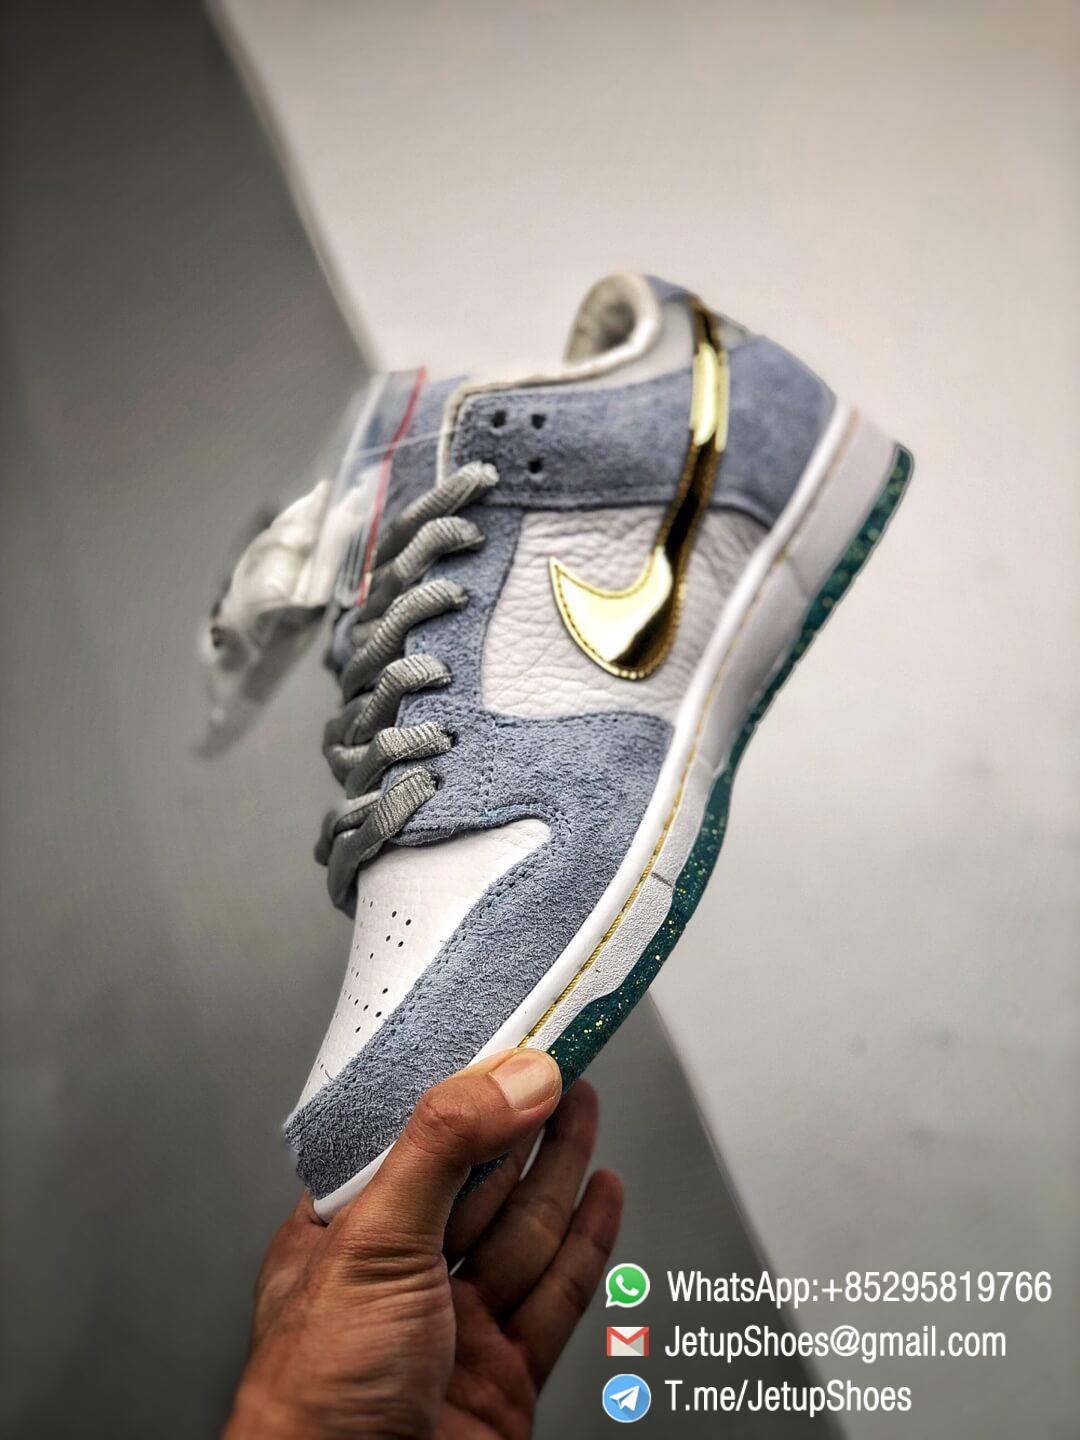 Best Replica Sneakers Sean Cliver x Nike Dunk Low SB Holiday Special DC9936 100 03